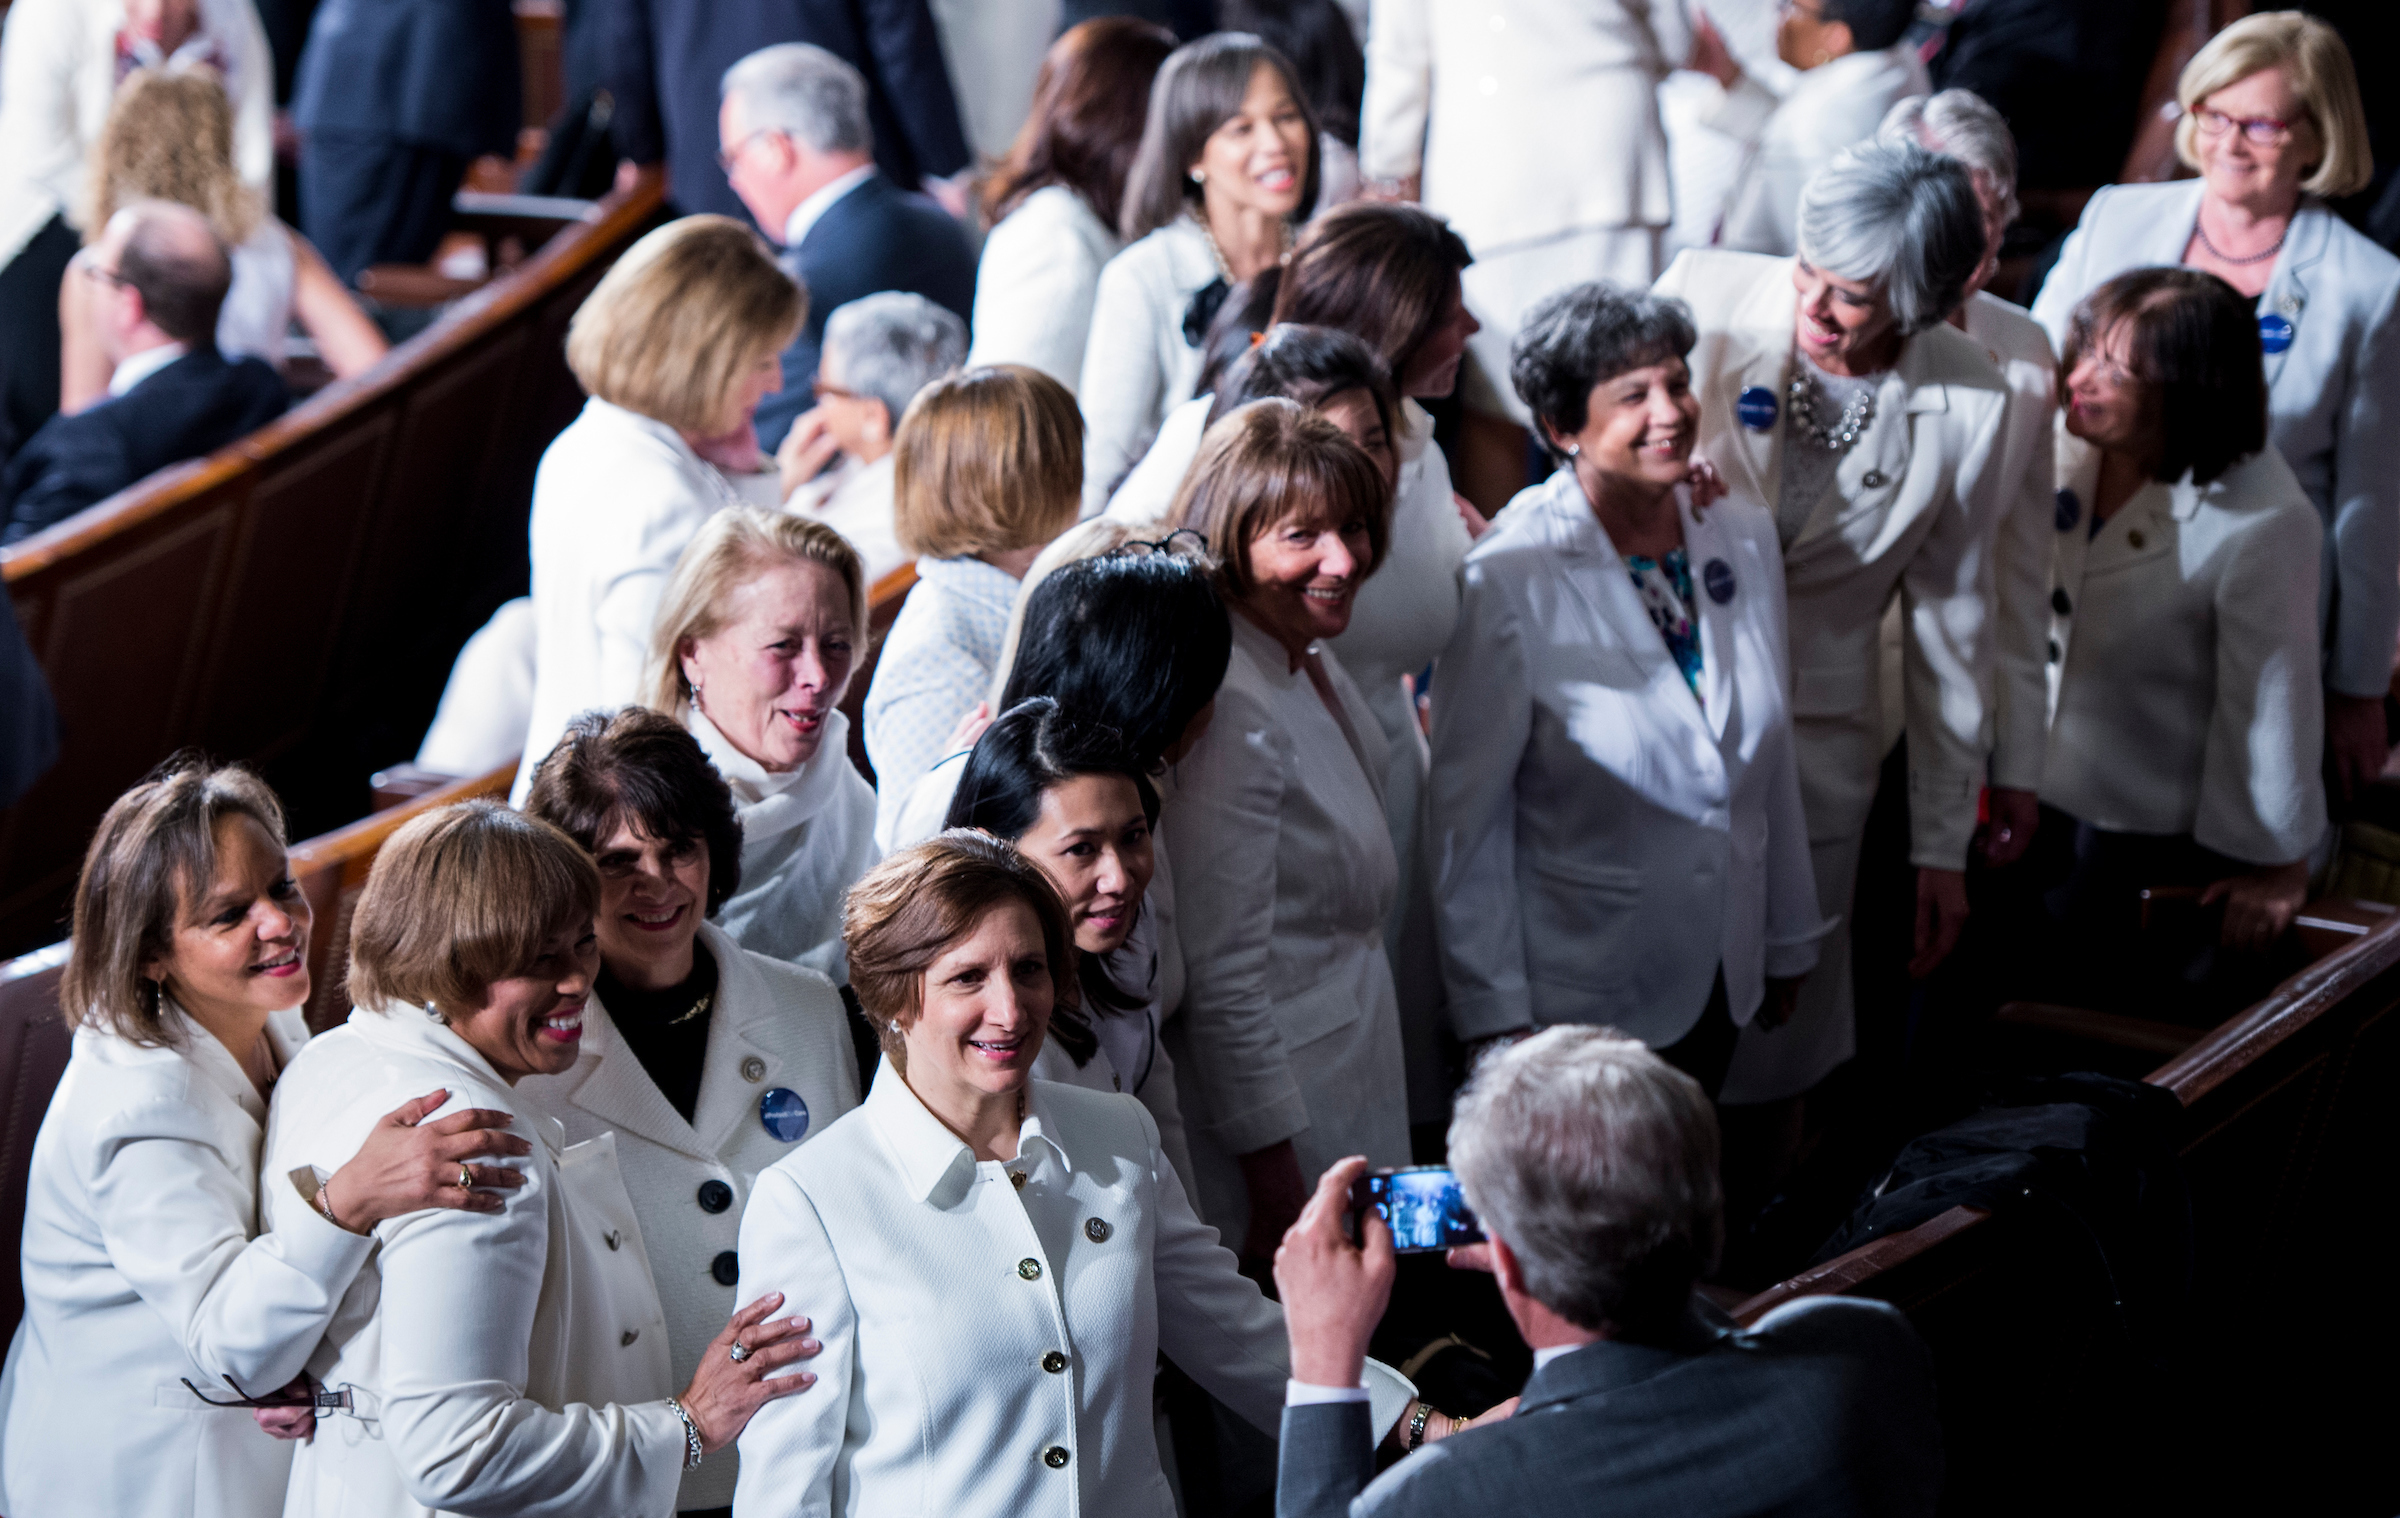 UNITED STATES - FEBRUARY 28: Rep. Frank Pallone, D-N.J., takes a group photo of women Democrats wearing all white for President Donald Trump's address to a joint session of Congress on Tuesday, Feb. 28, 2017. (Photo By Bill Clark/CQ Roll Call)